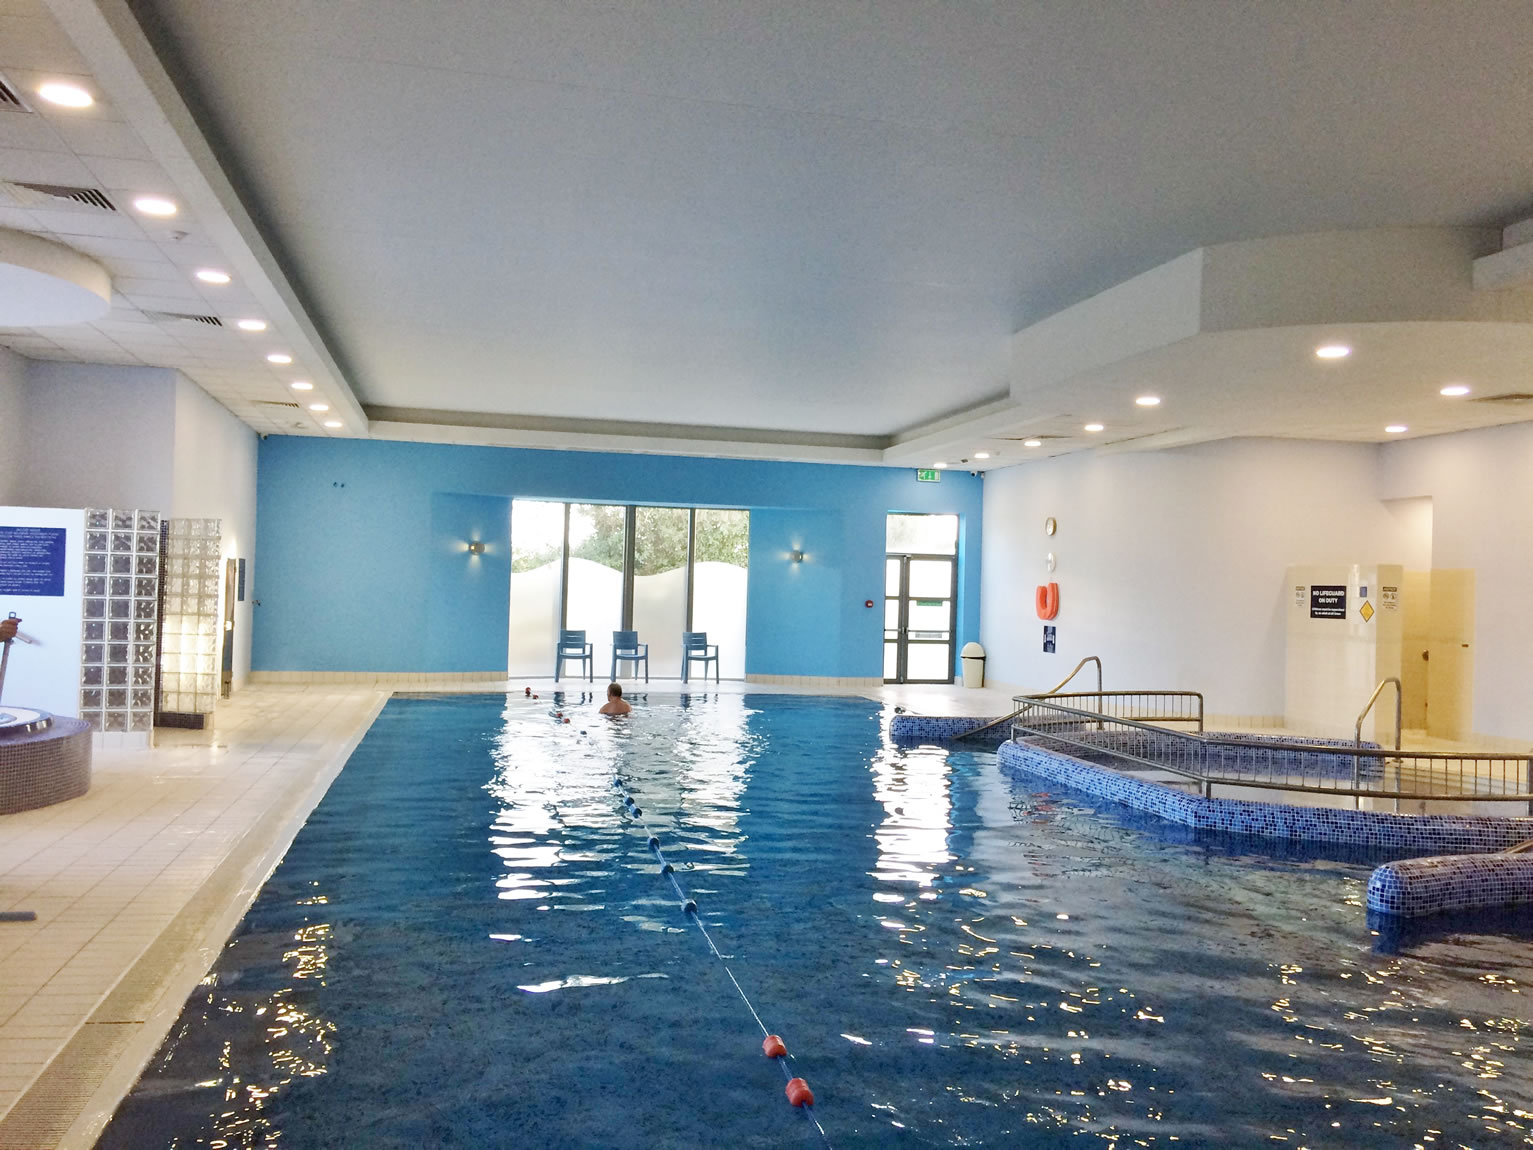 Springhill Court Spa & Leisure